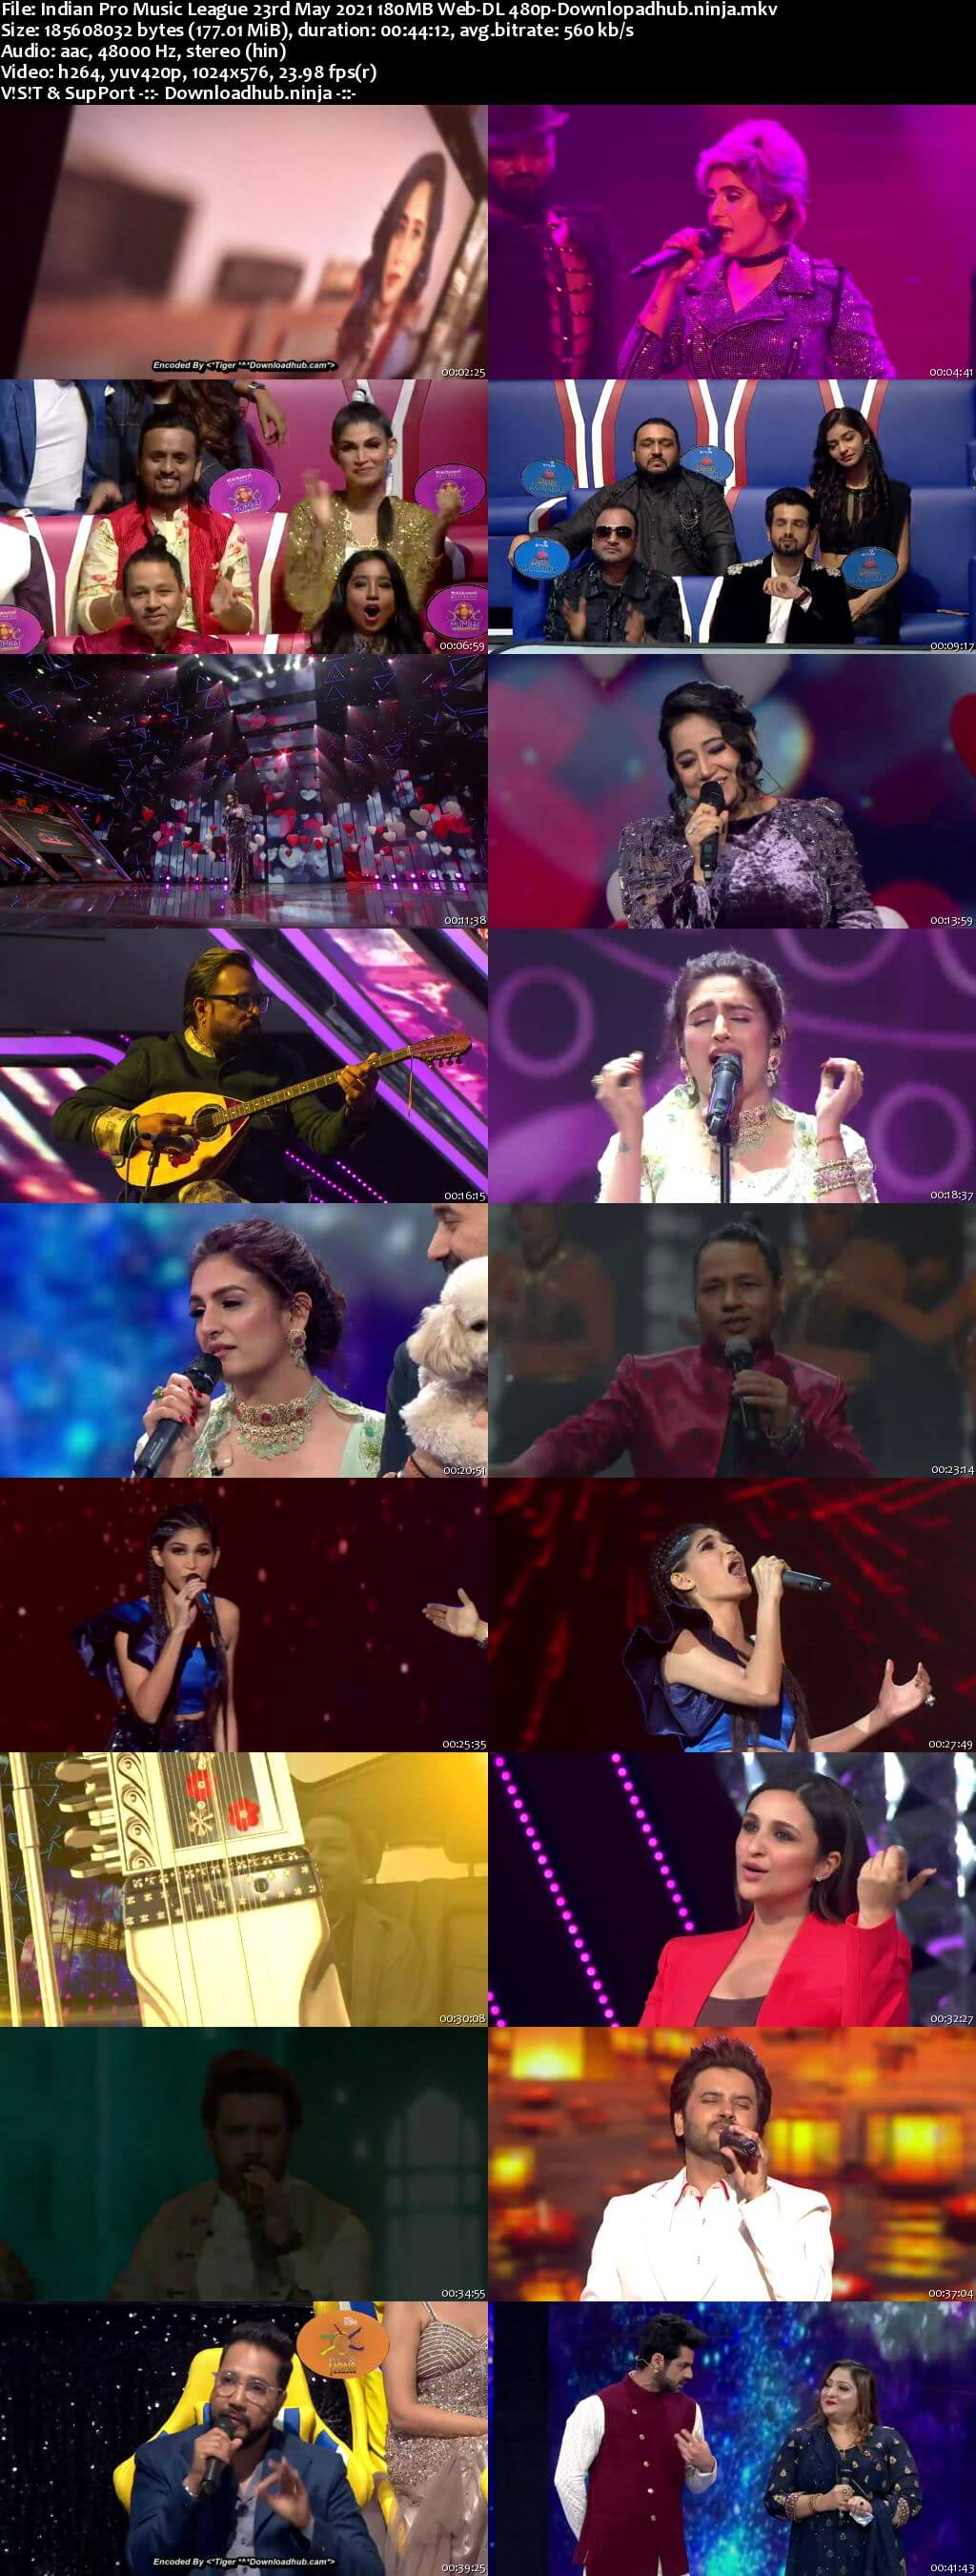 Indian Pro Music League 23rd May 2021 180MB Web-DL 480p